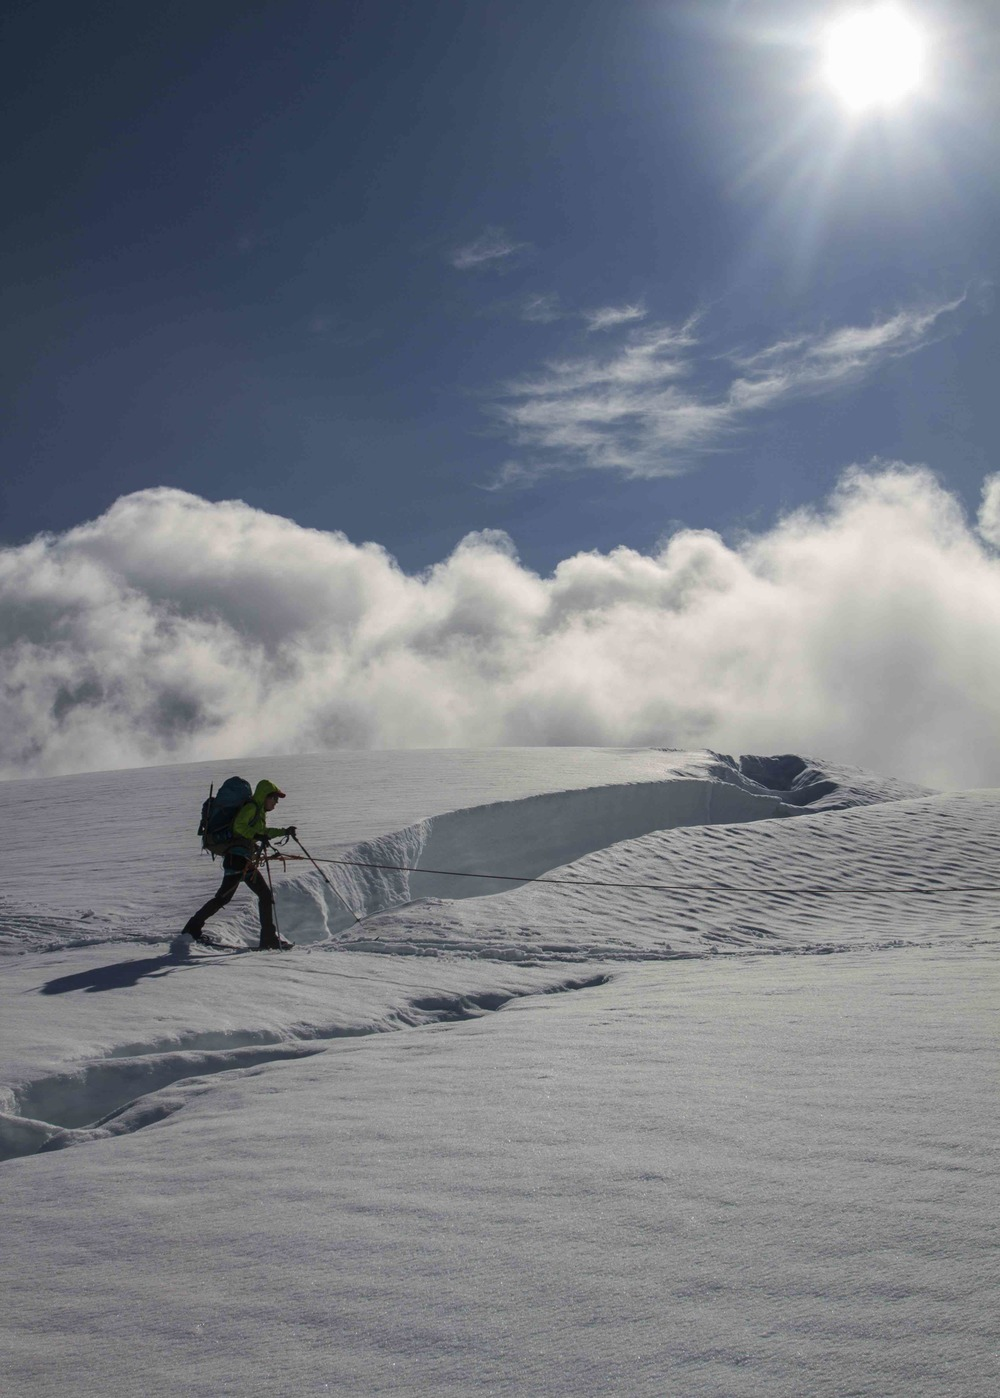 Sarah Cooley skis by a crevasse during the descent from Nugget Ridge.  Photo by Adam Taylor.